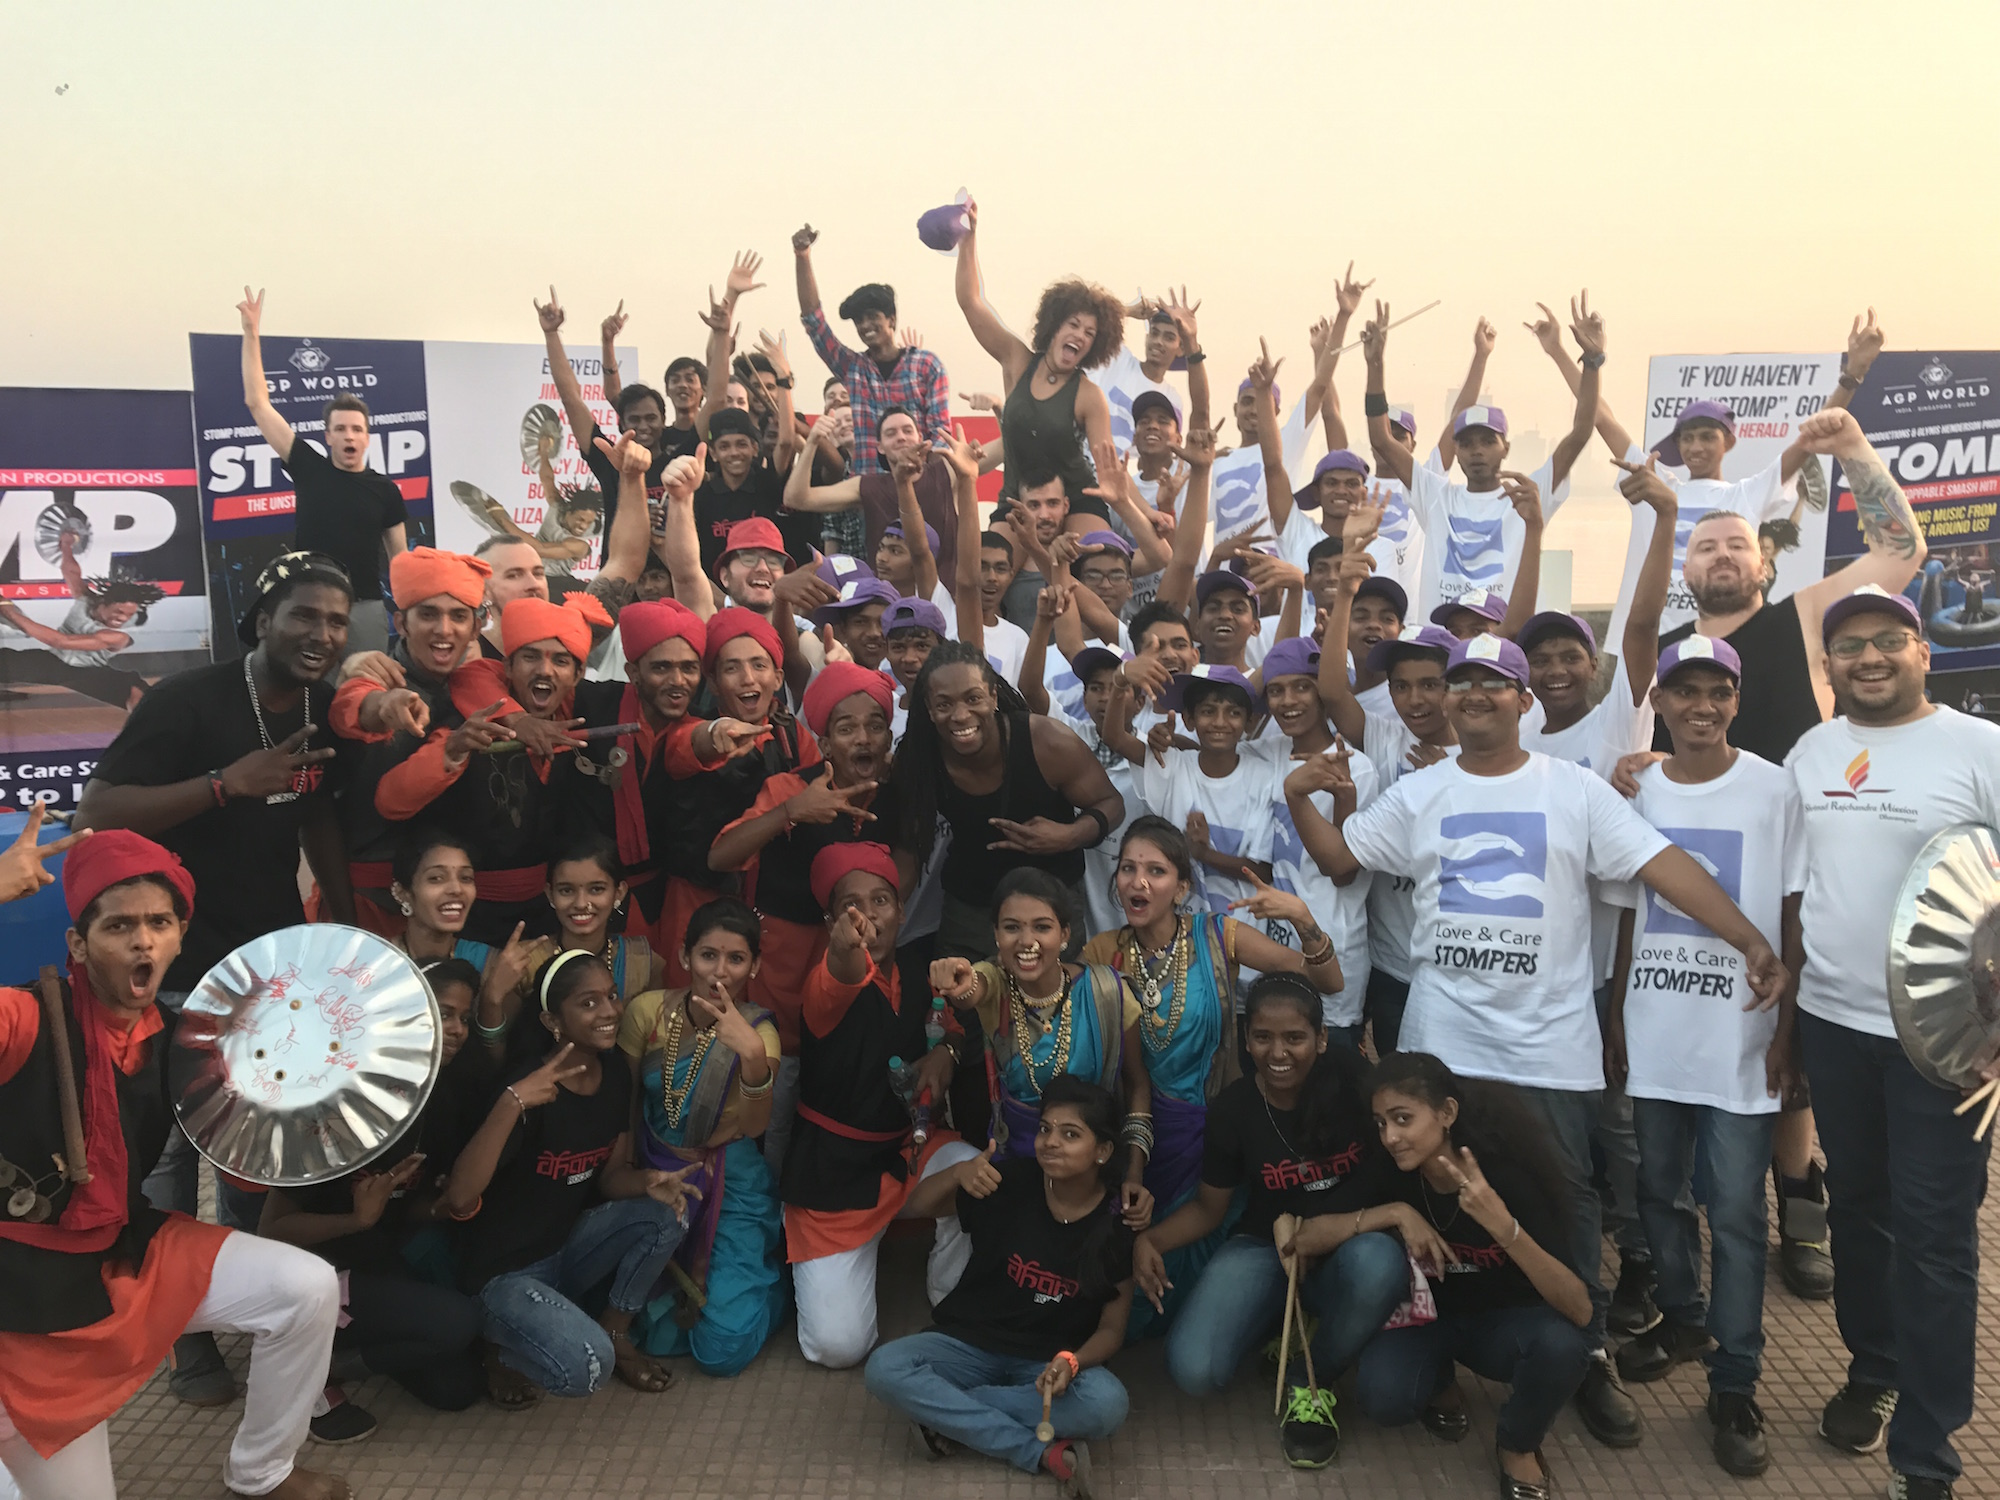 STOMP in Mumbai with The Love and Care Stompers, Lezim and Dharavi Rocks